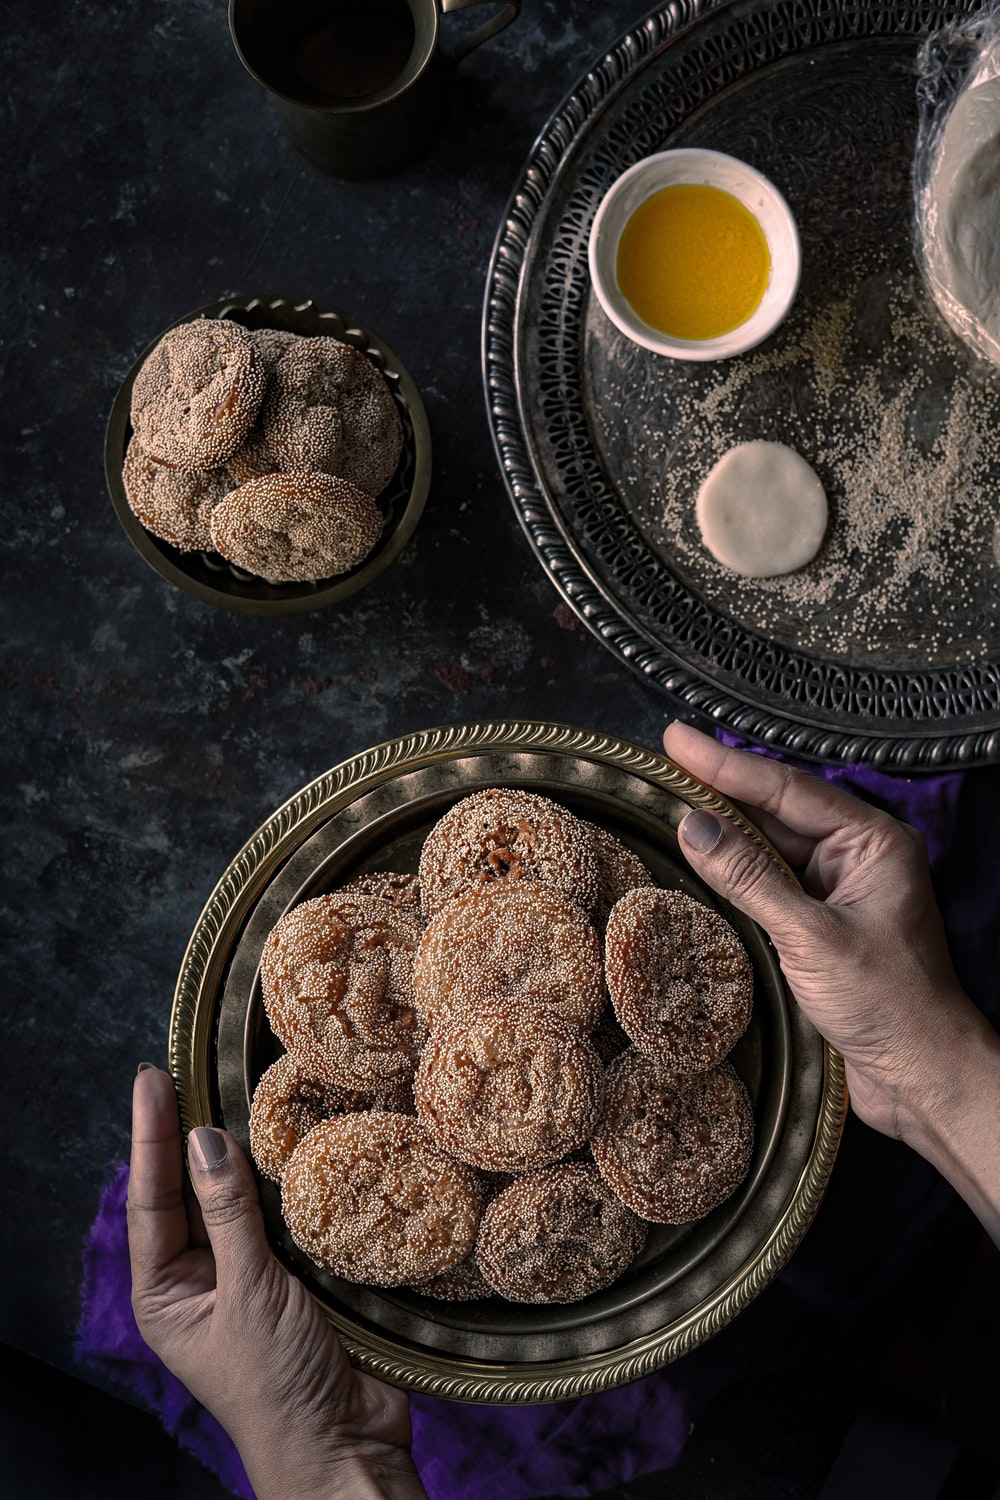 person holding brown round cookies